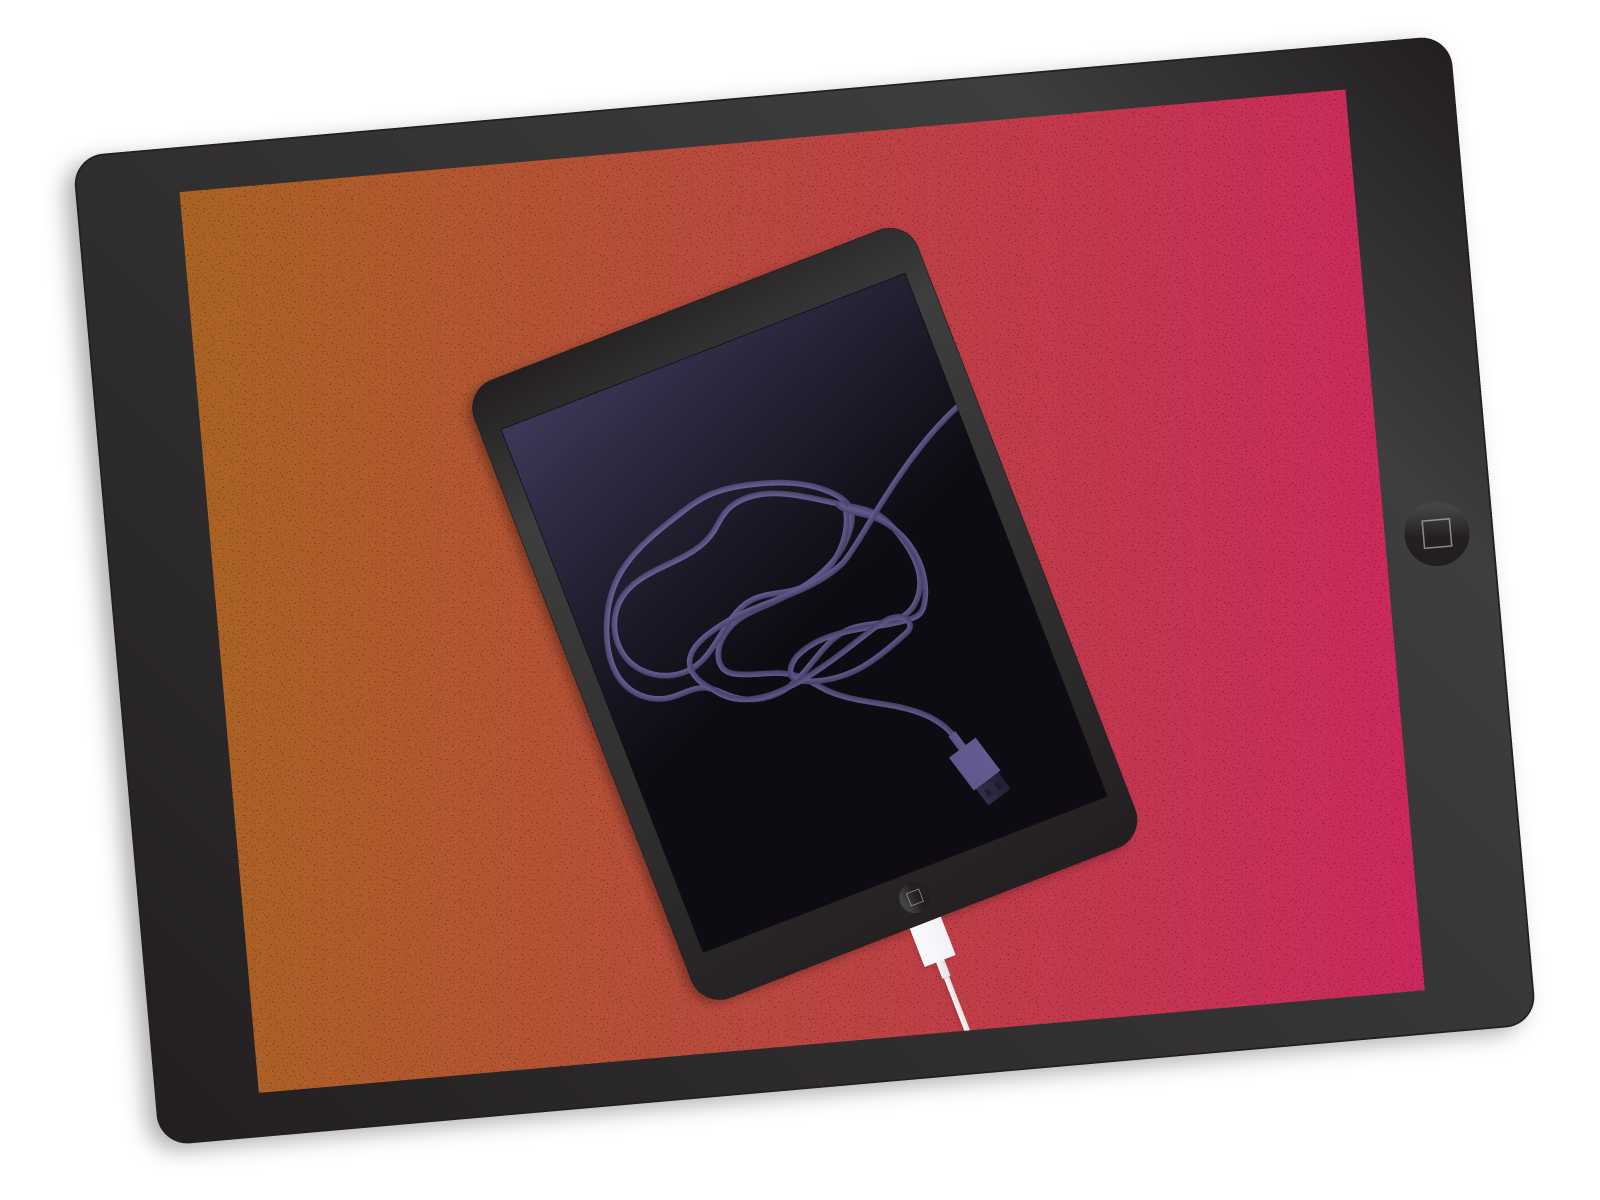 Illustration: An iPad cable is coiled to resemble a human brain